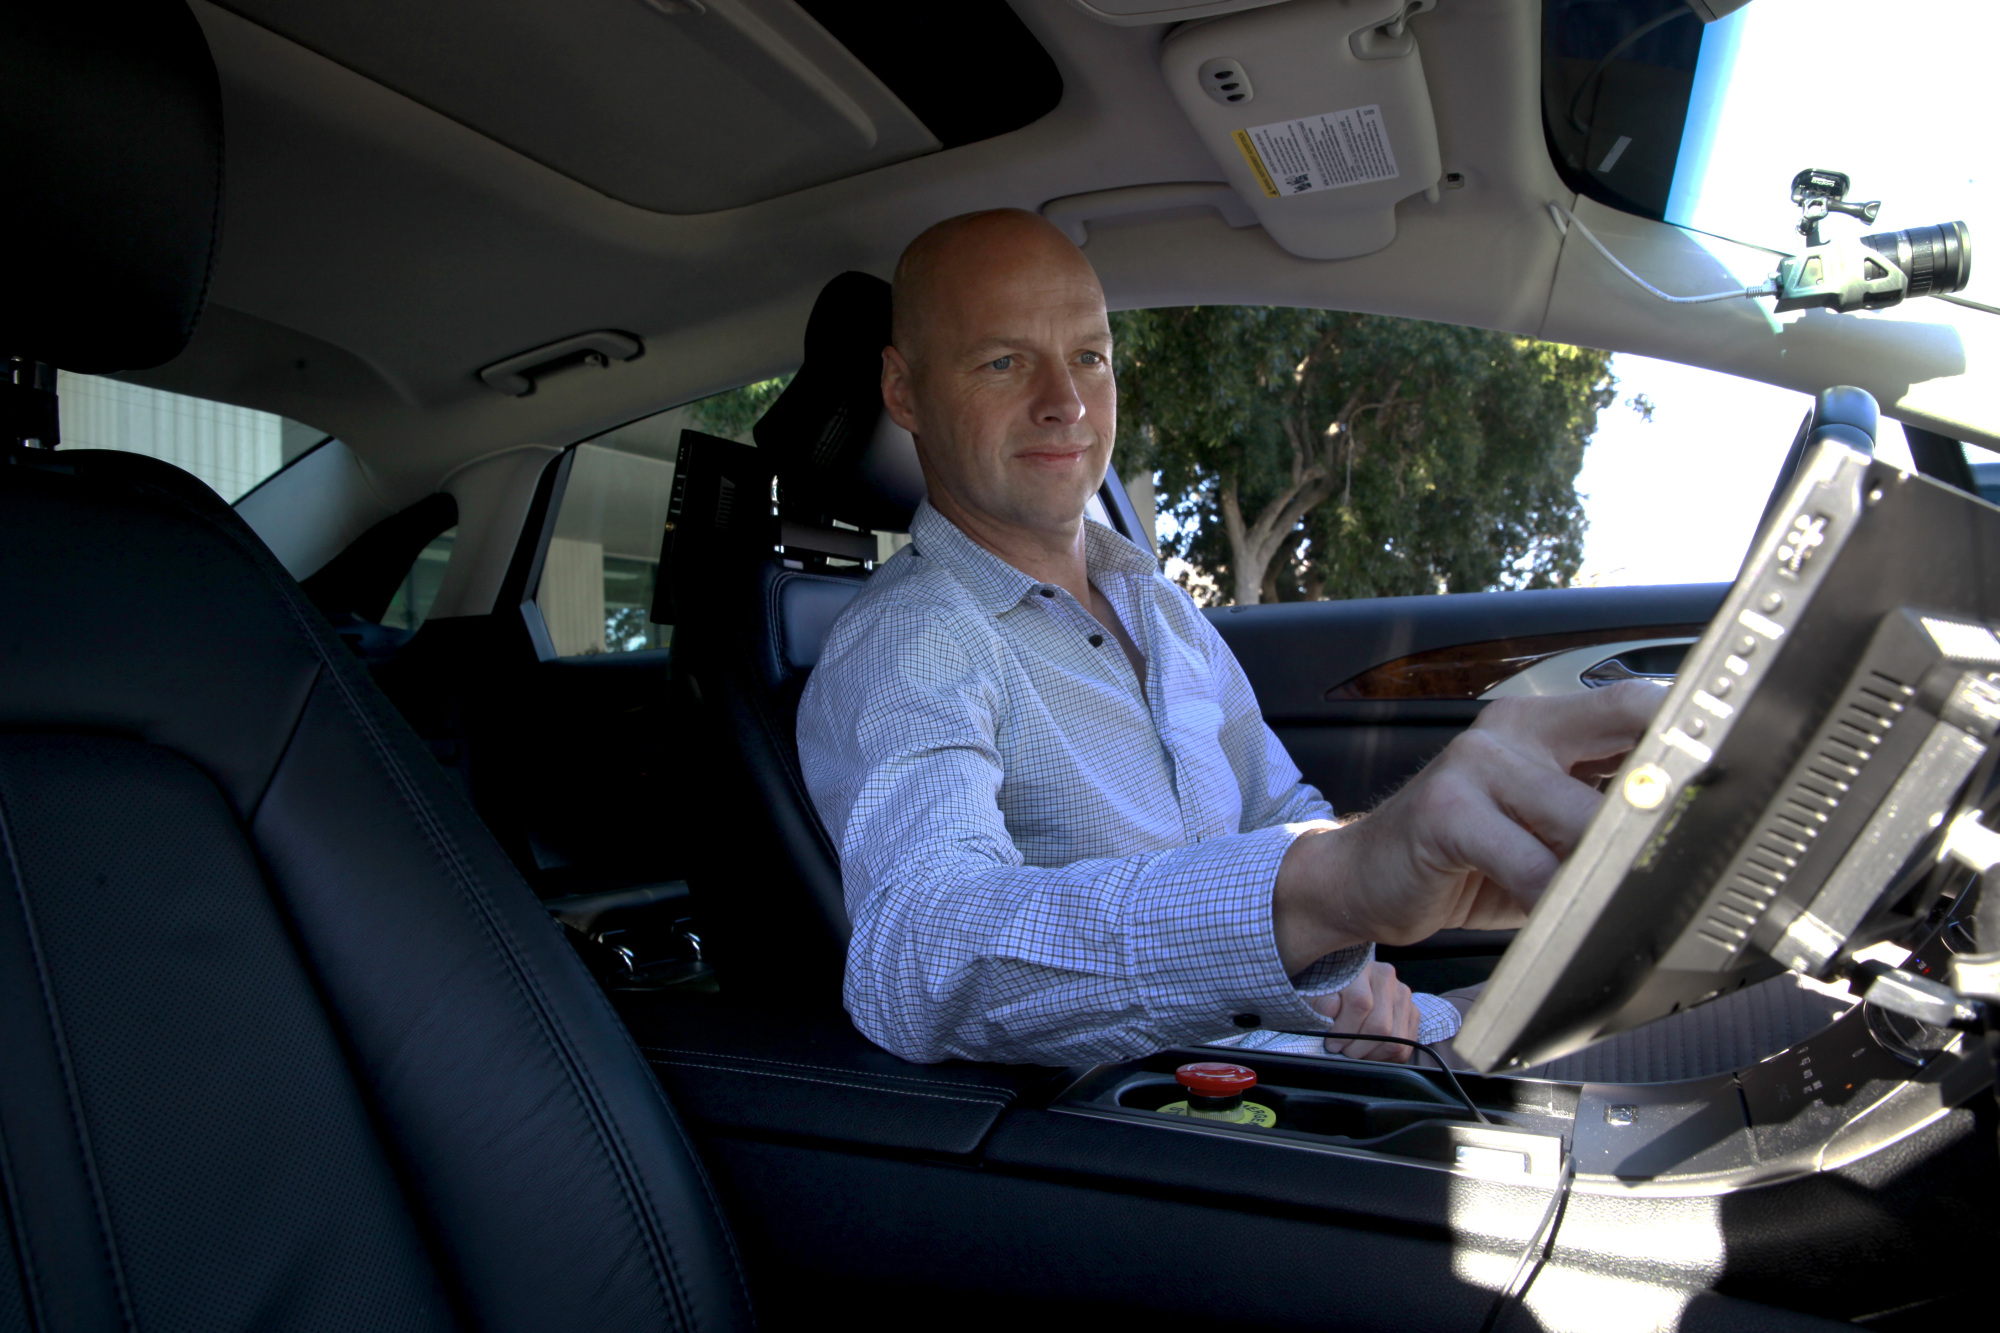 Sebastian Thrun, self-driving car pioneer, Udacity co-founder, and perpetual Silicon Valley optimist.